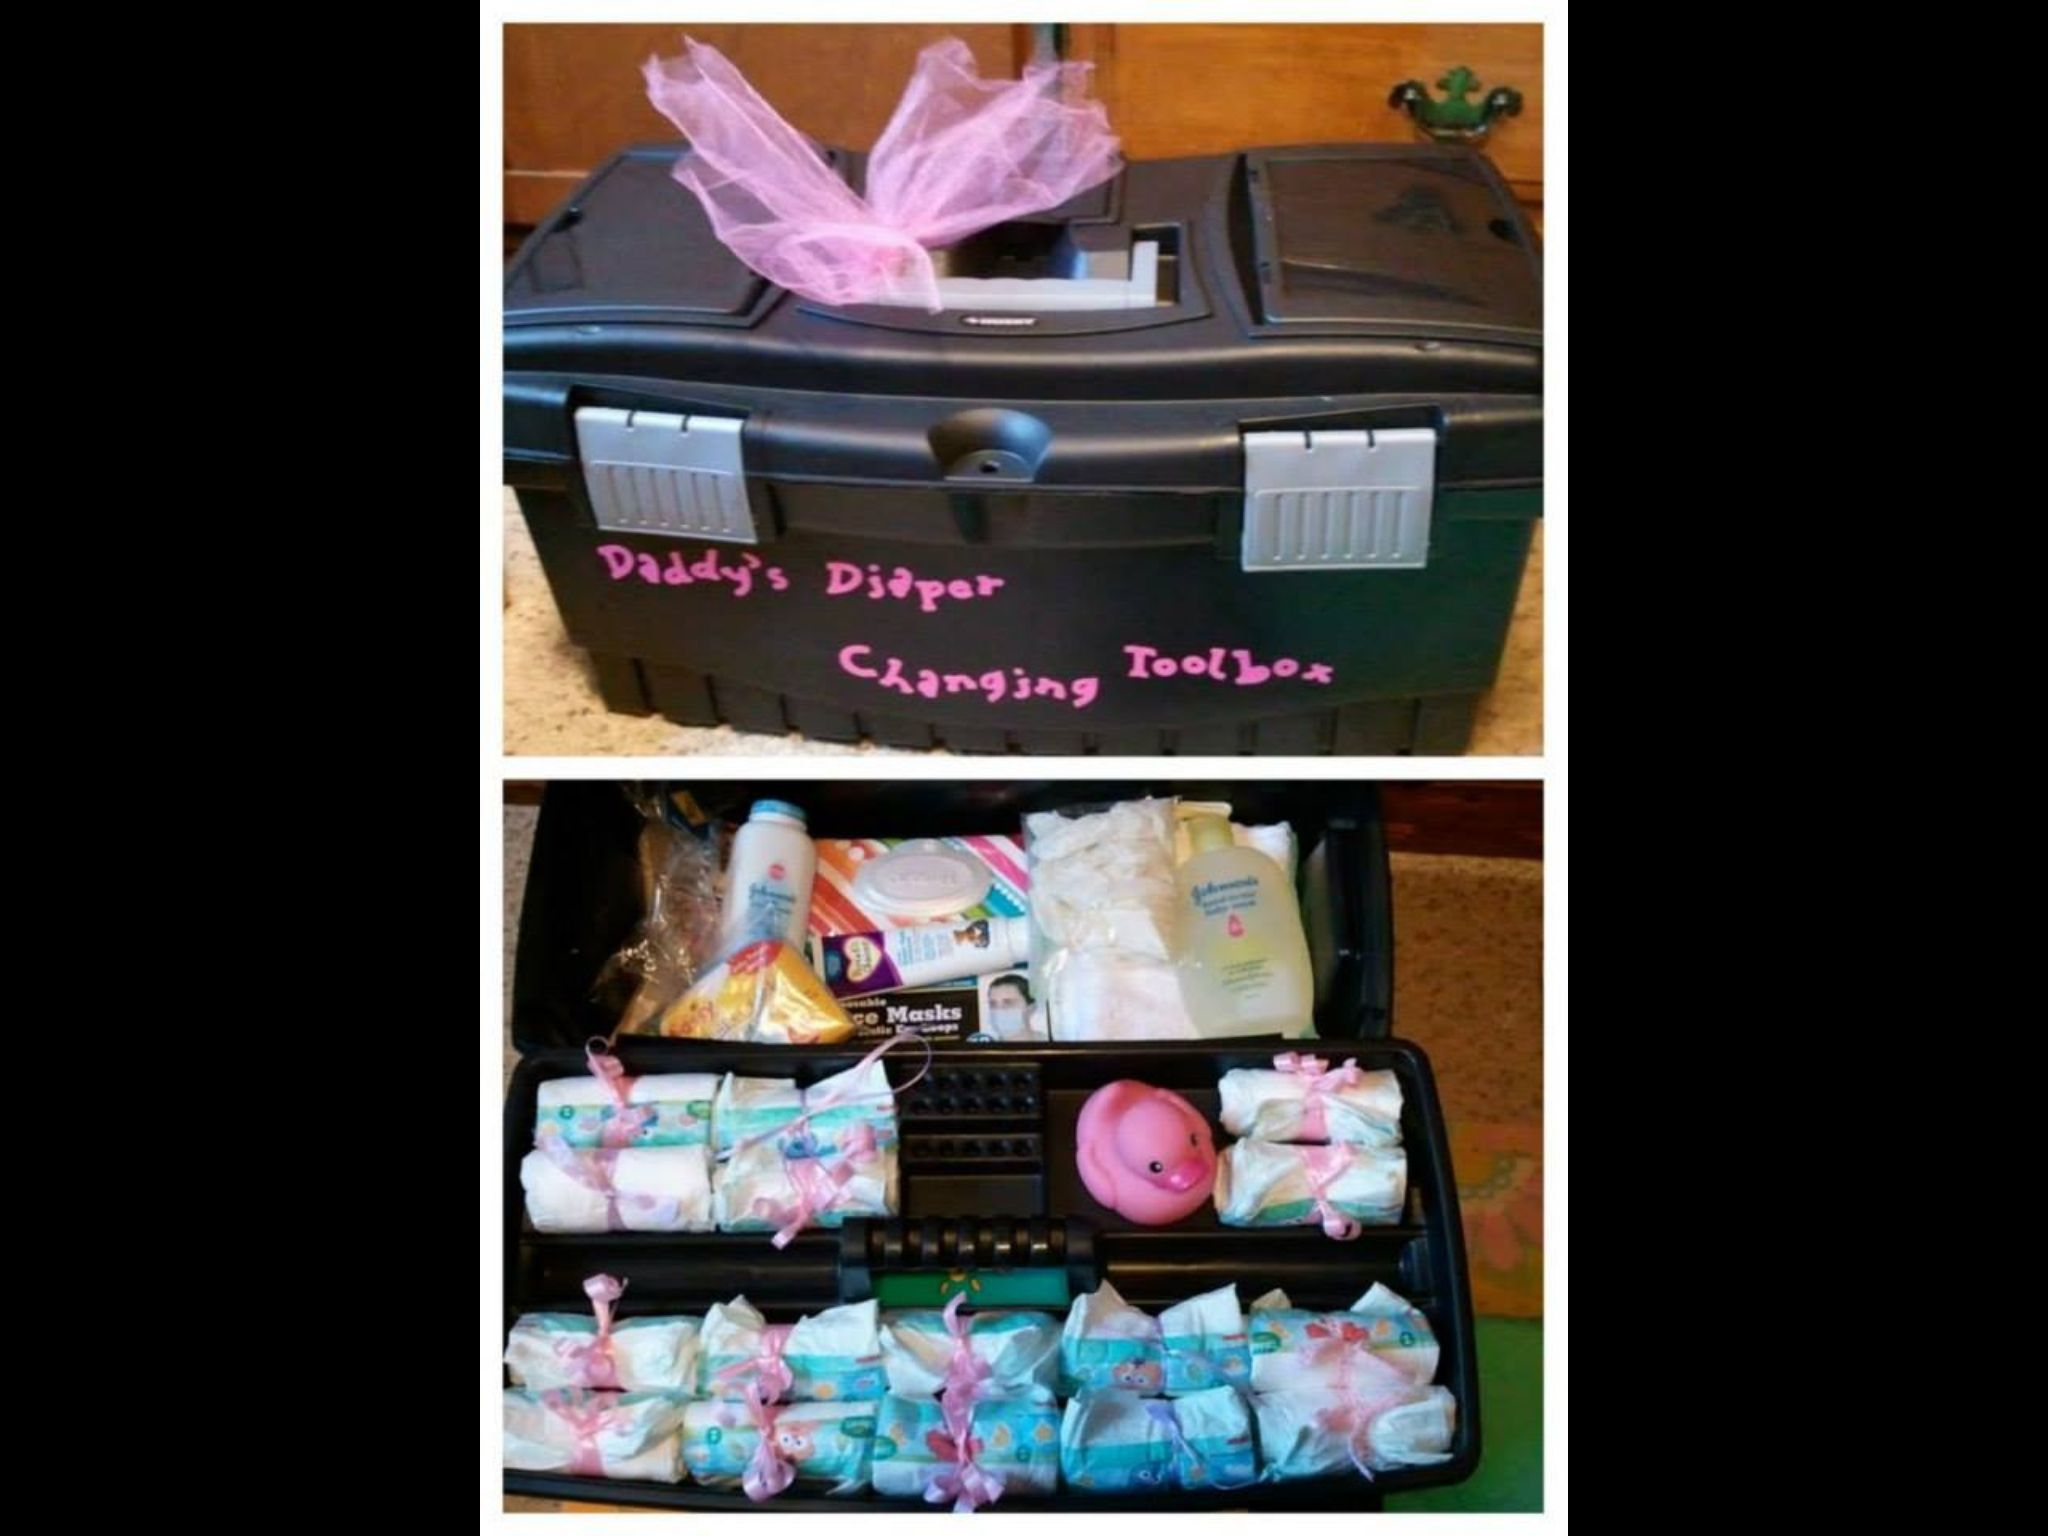 daddy tool box diaper changing kit crafts pinterest diapers